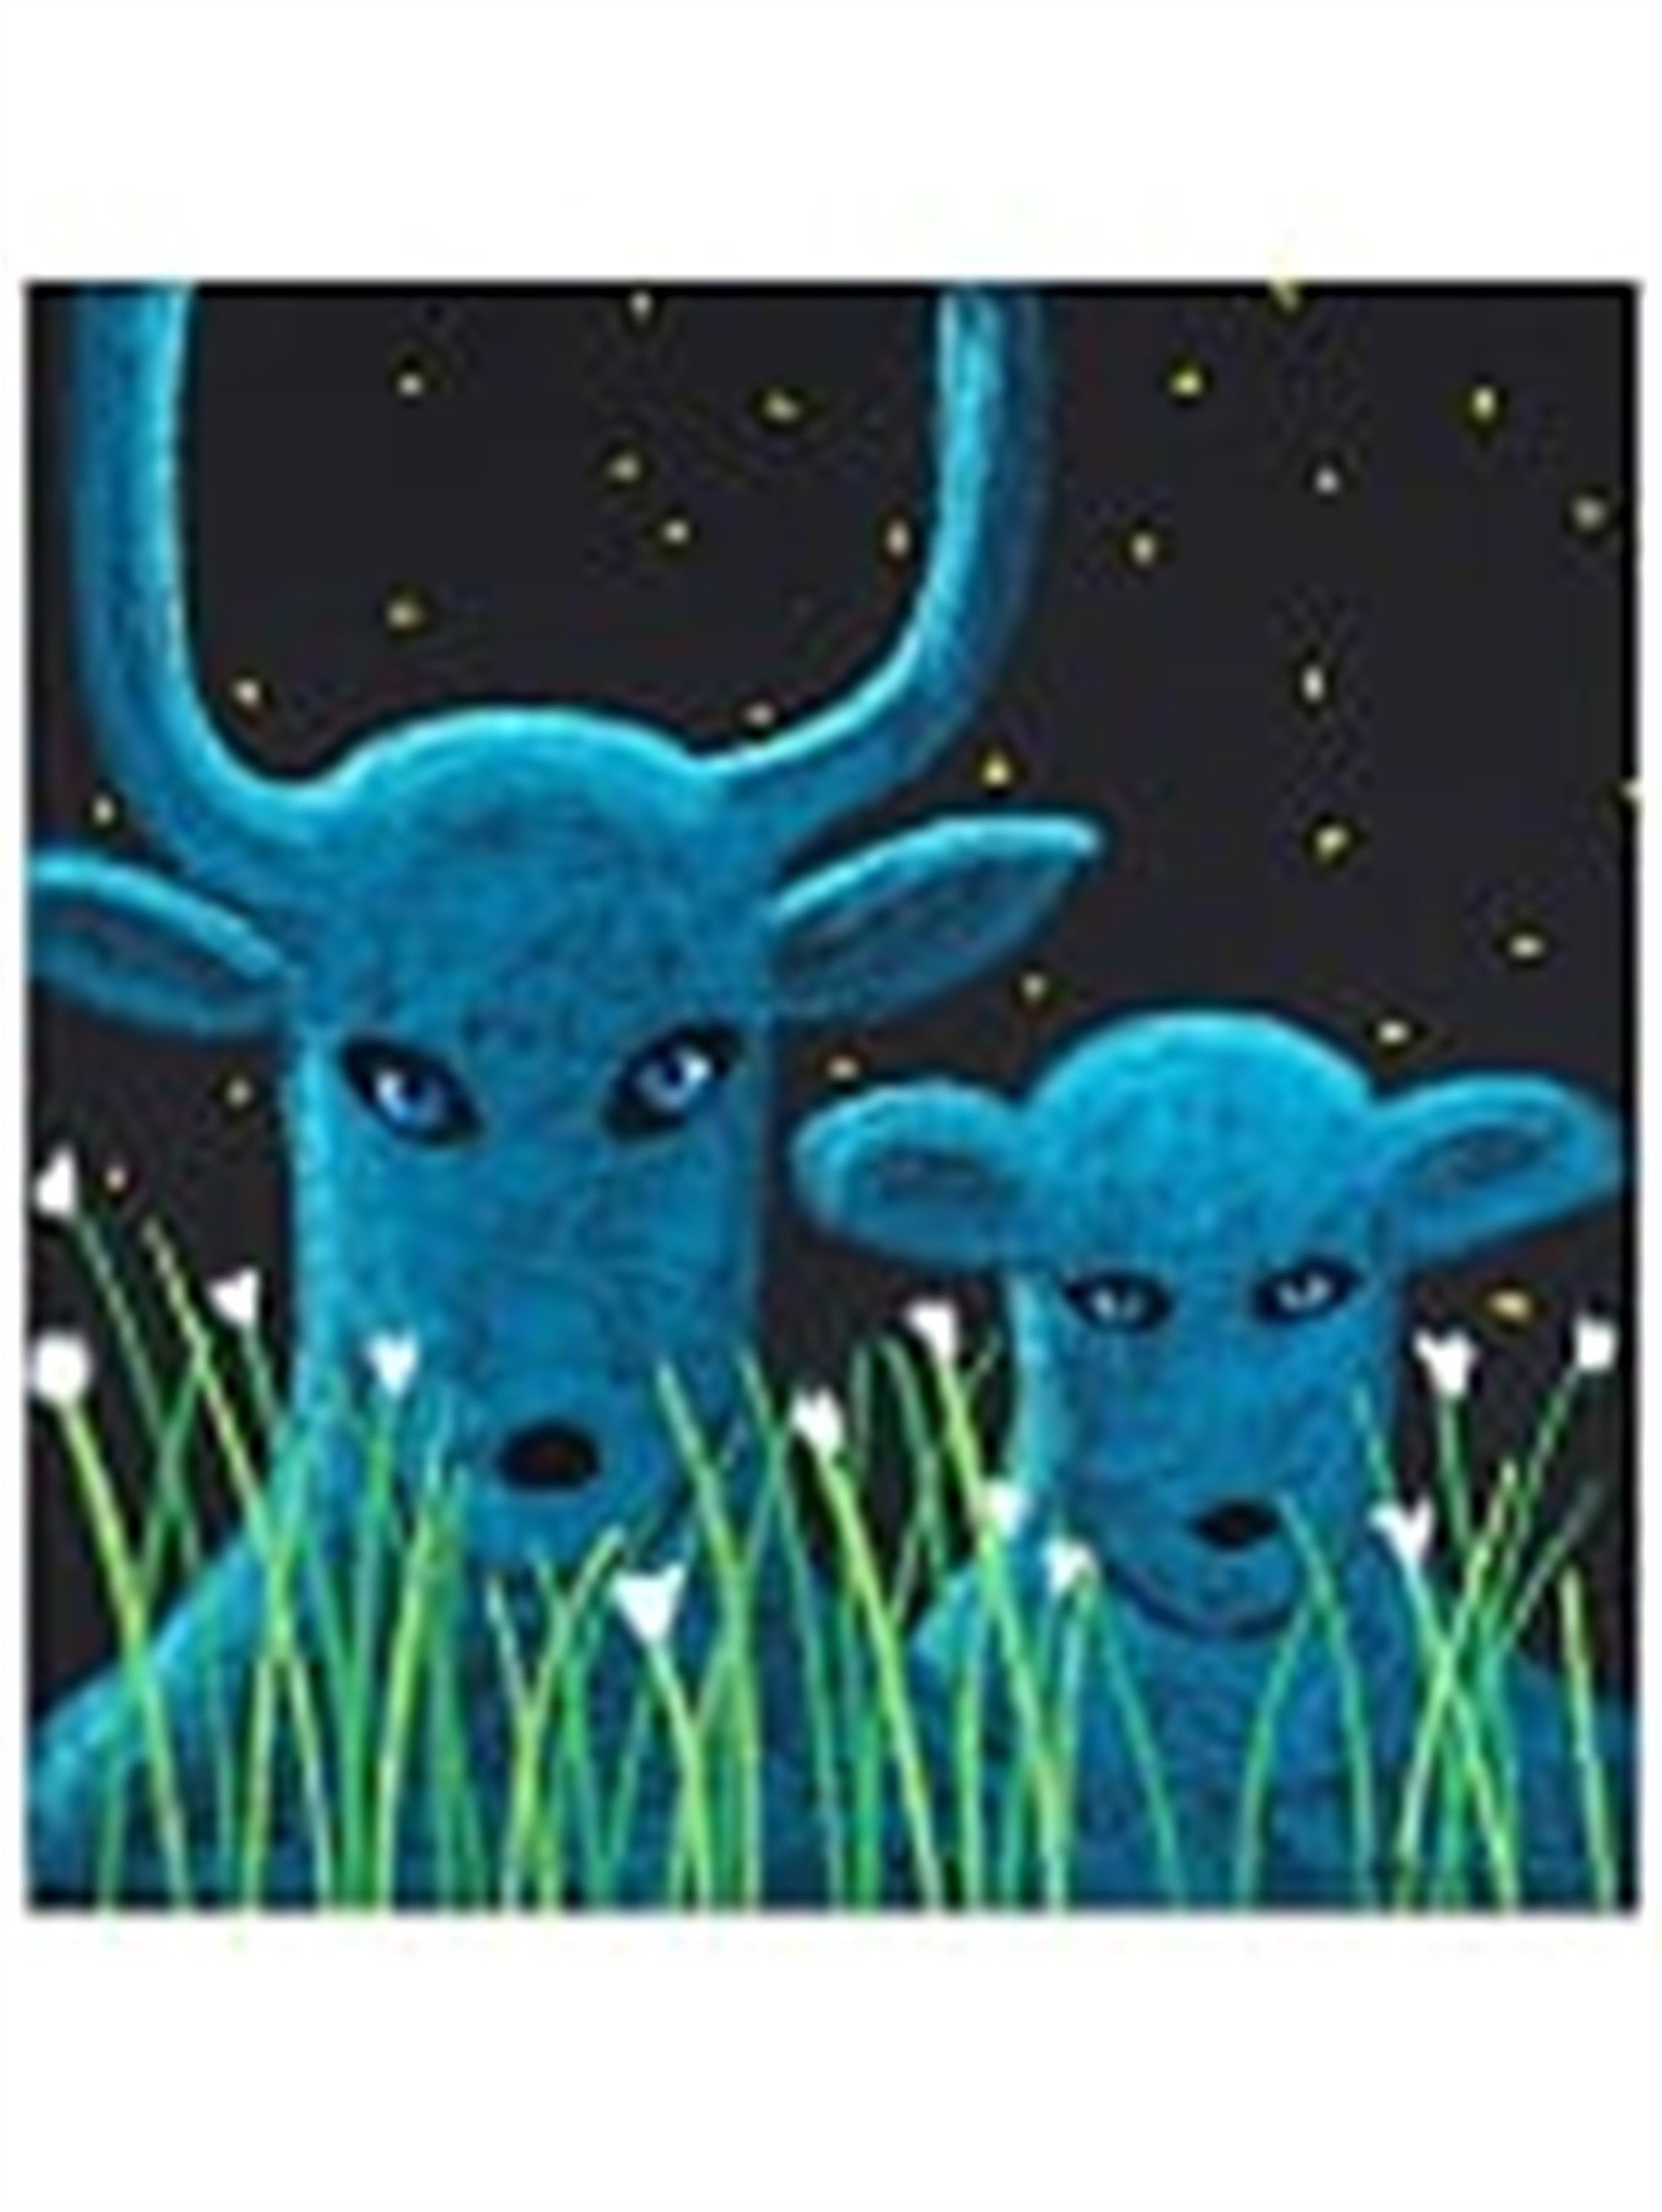 From: The Night Garden 'So Deer' by Carole LaRoche